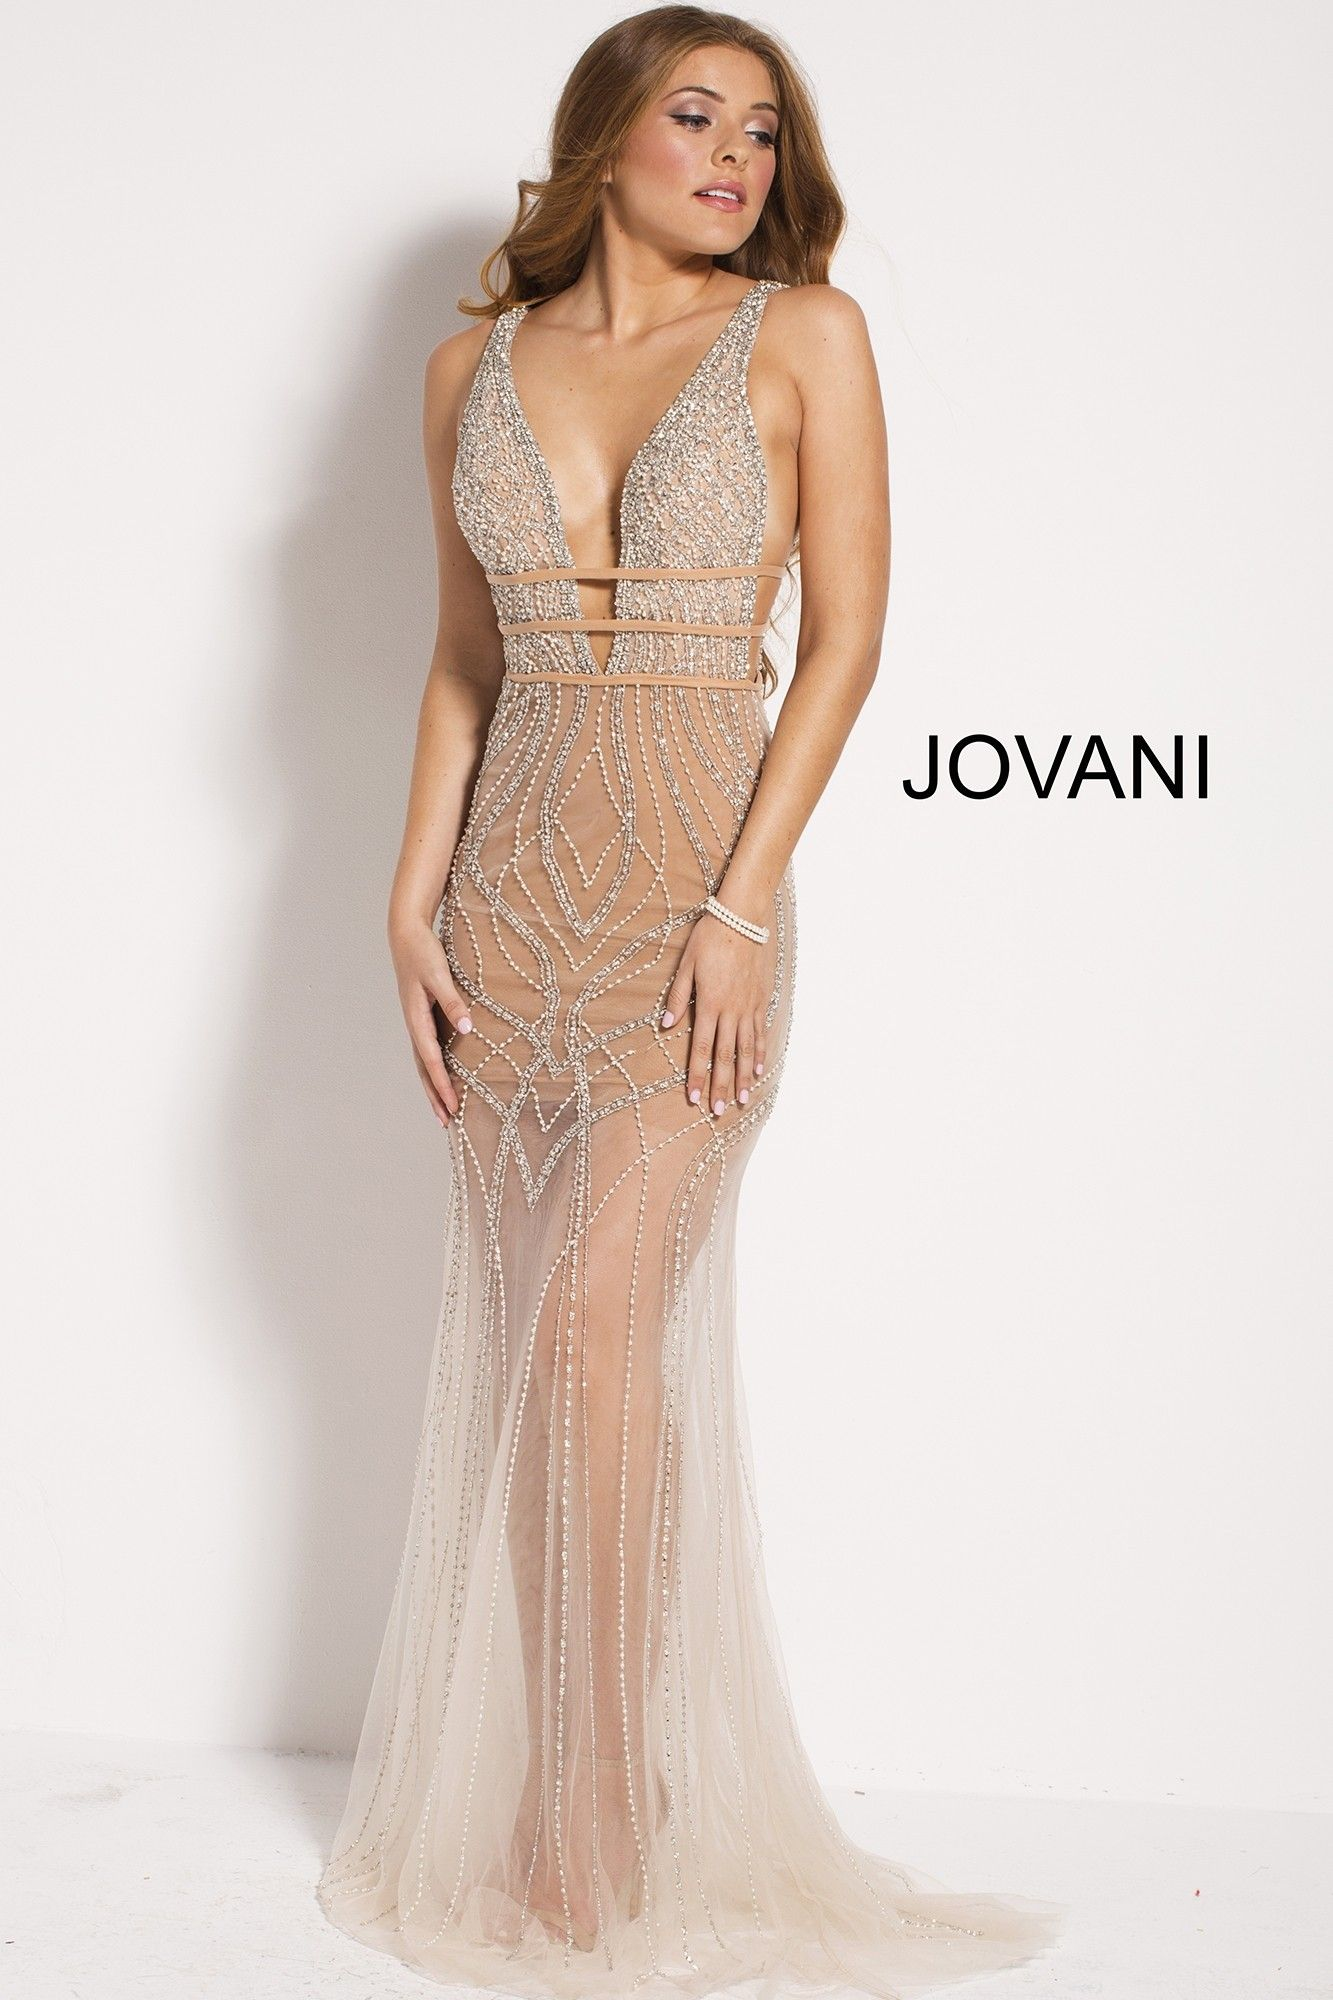 63cfb2be5f Jovani 51272 Seductive Jeweled Illusion Gown in 2019